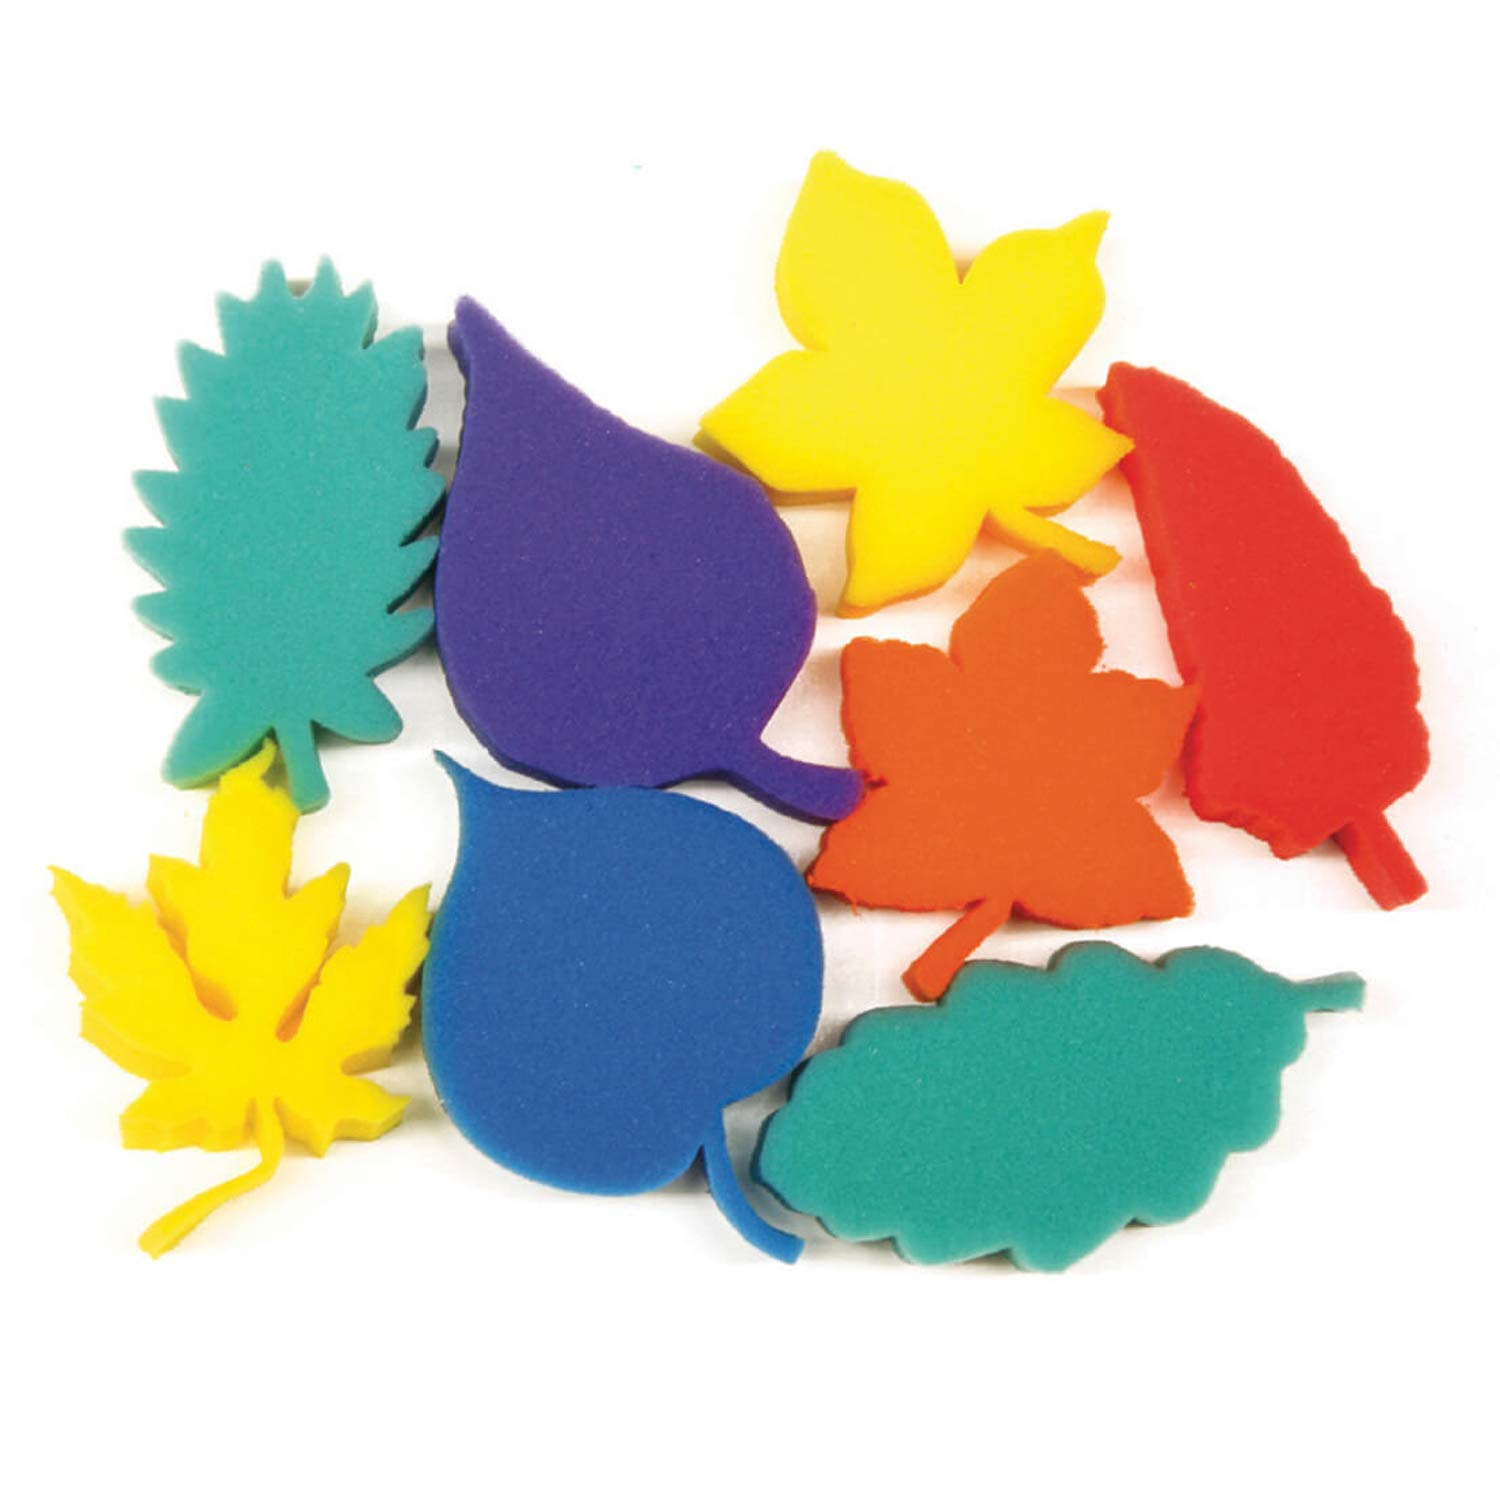 Pacon PACAC9077 Creativity Street Paint Sponges Pack of 8 Leaf Shapes